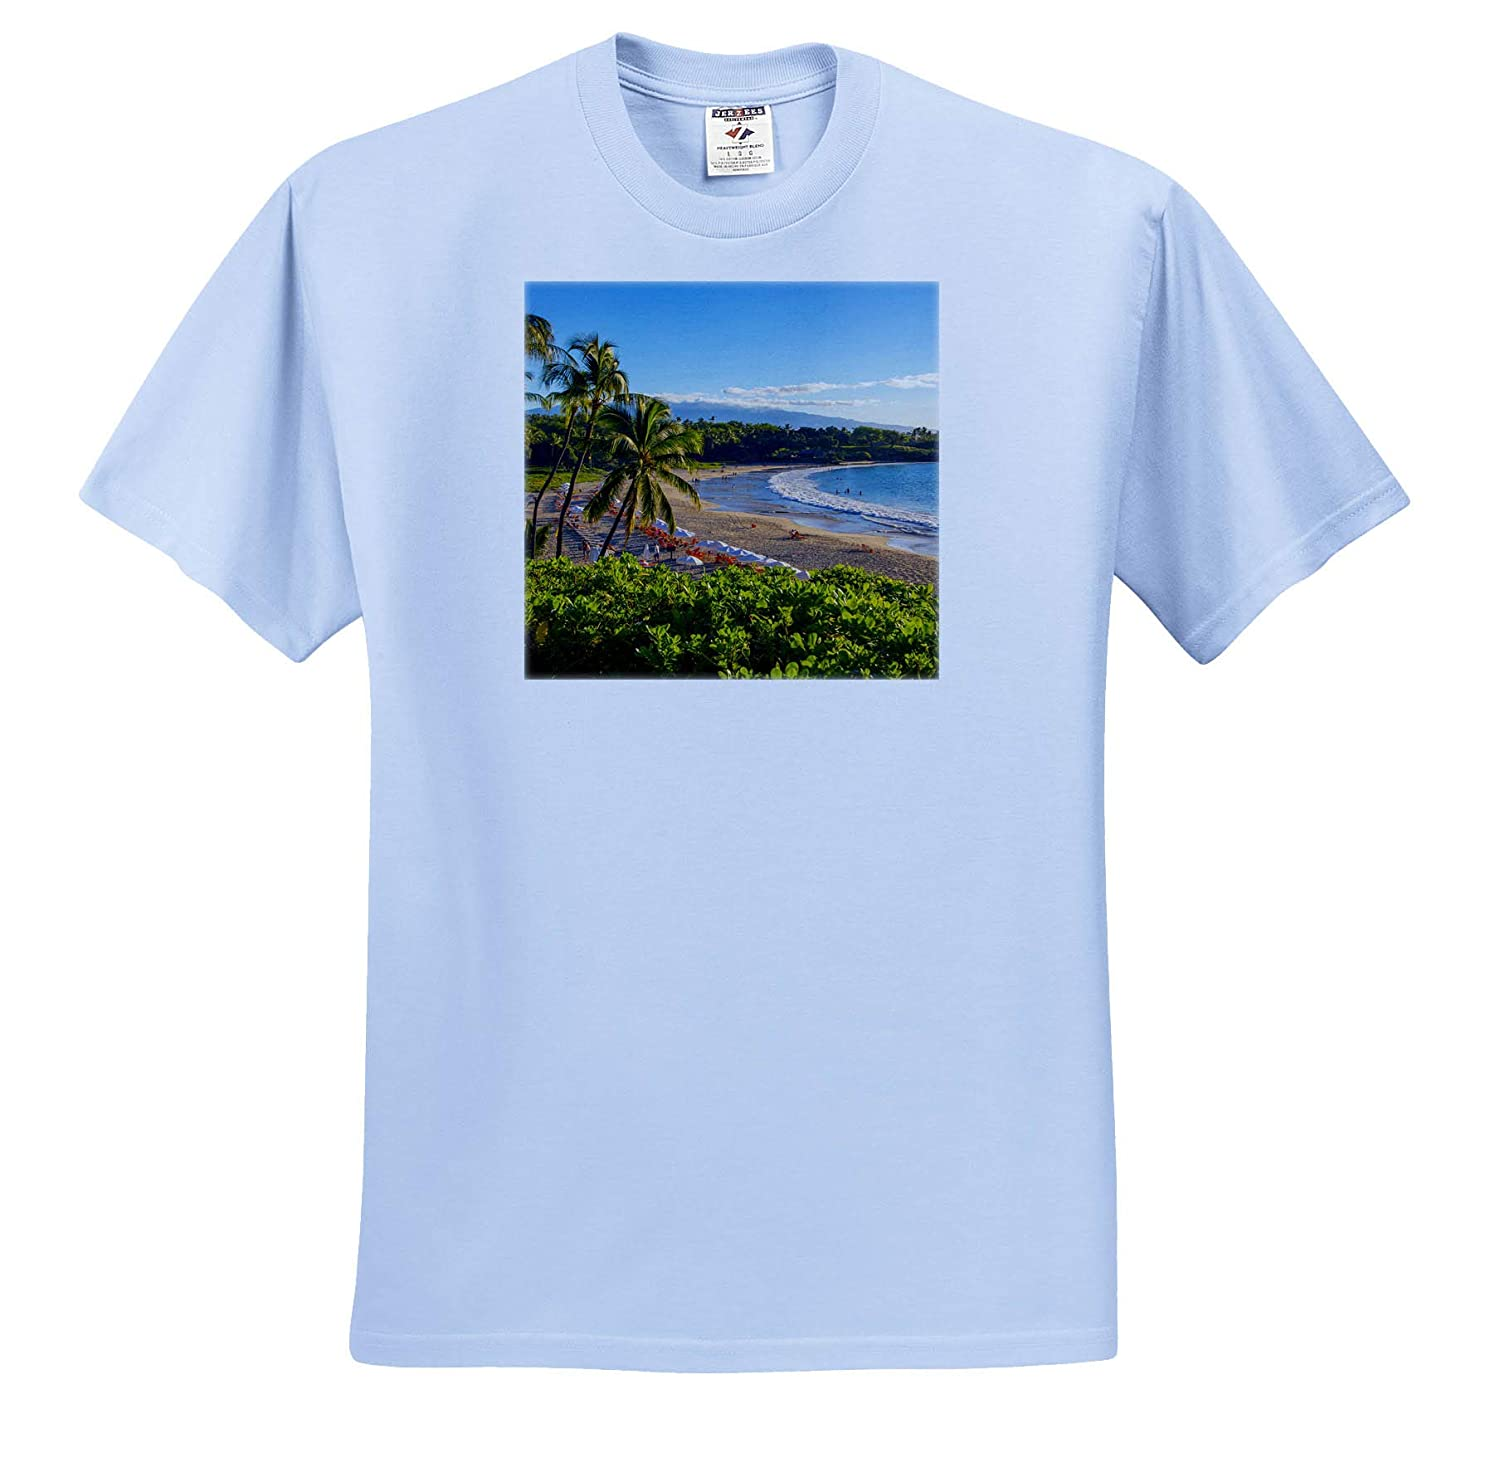 Hawaii ts/_314794 Island of Hawaii Adult T-Shirt XL Kohala Coast 3dRose Danita Delimont Kaunaoa Beach